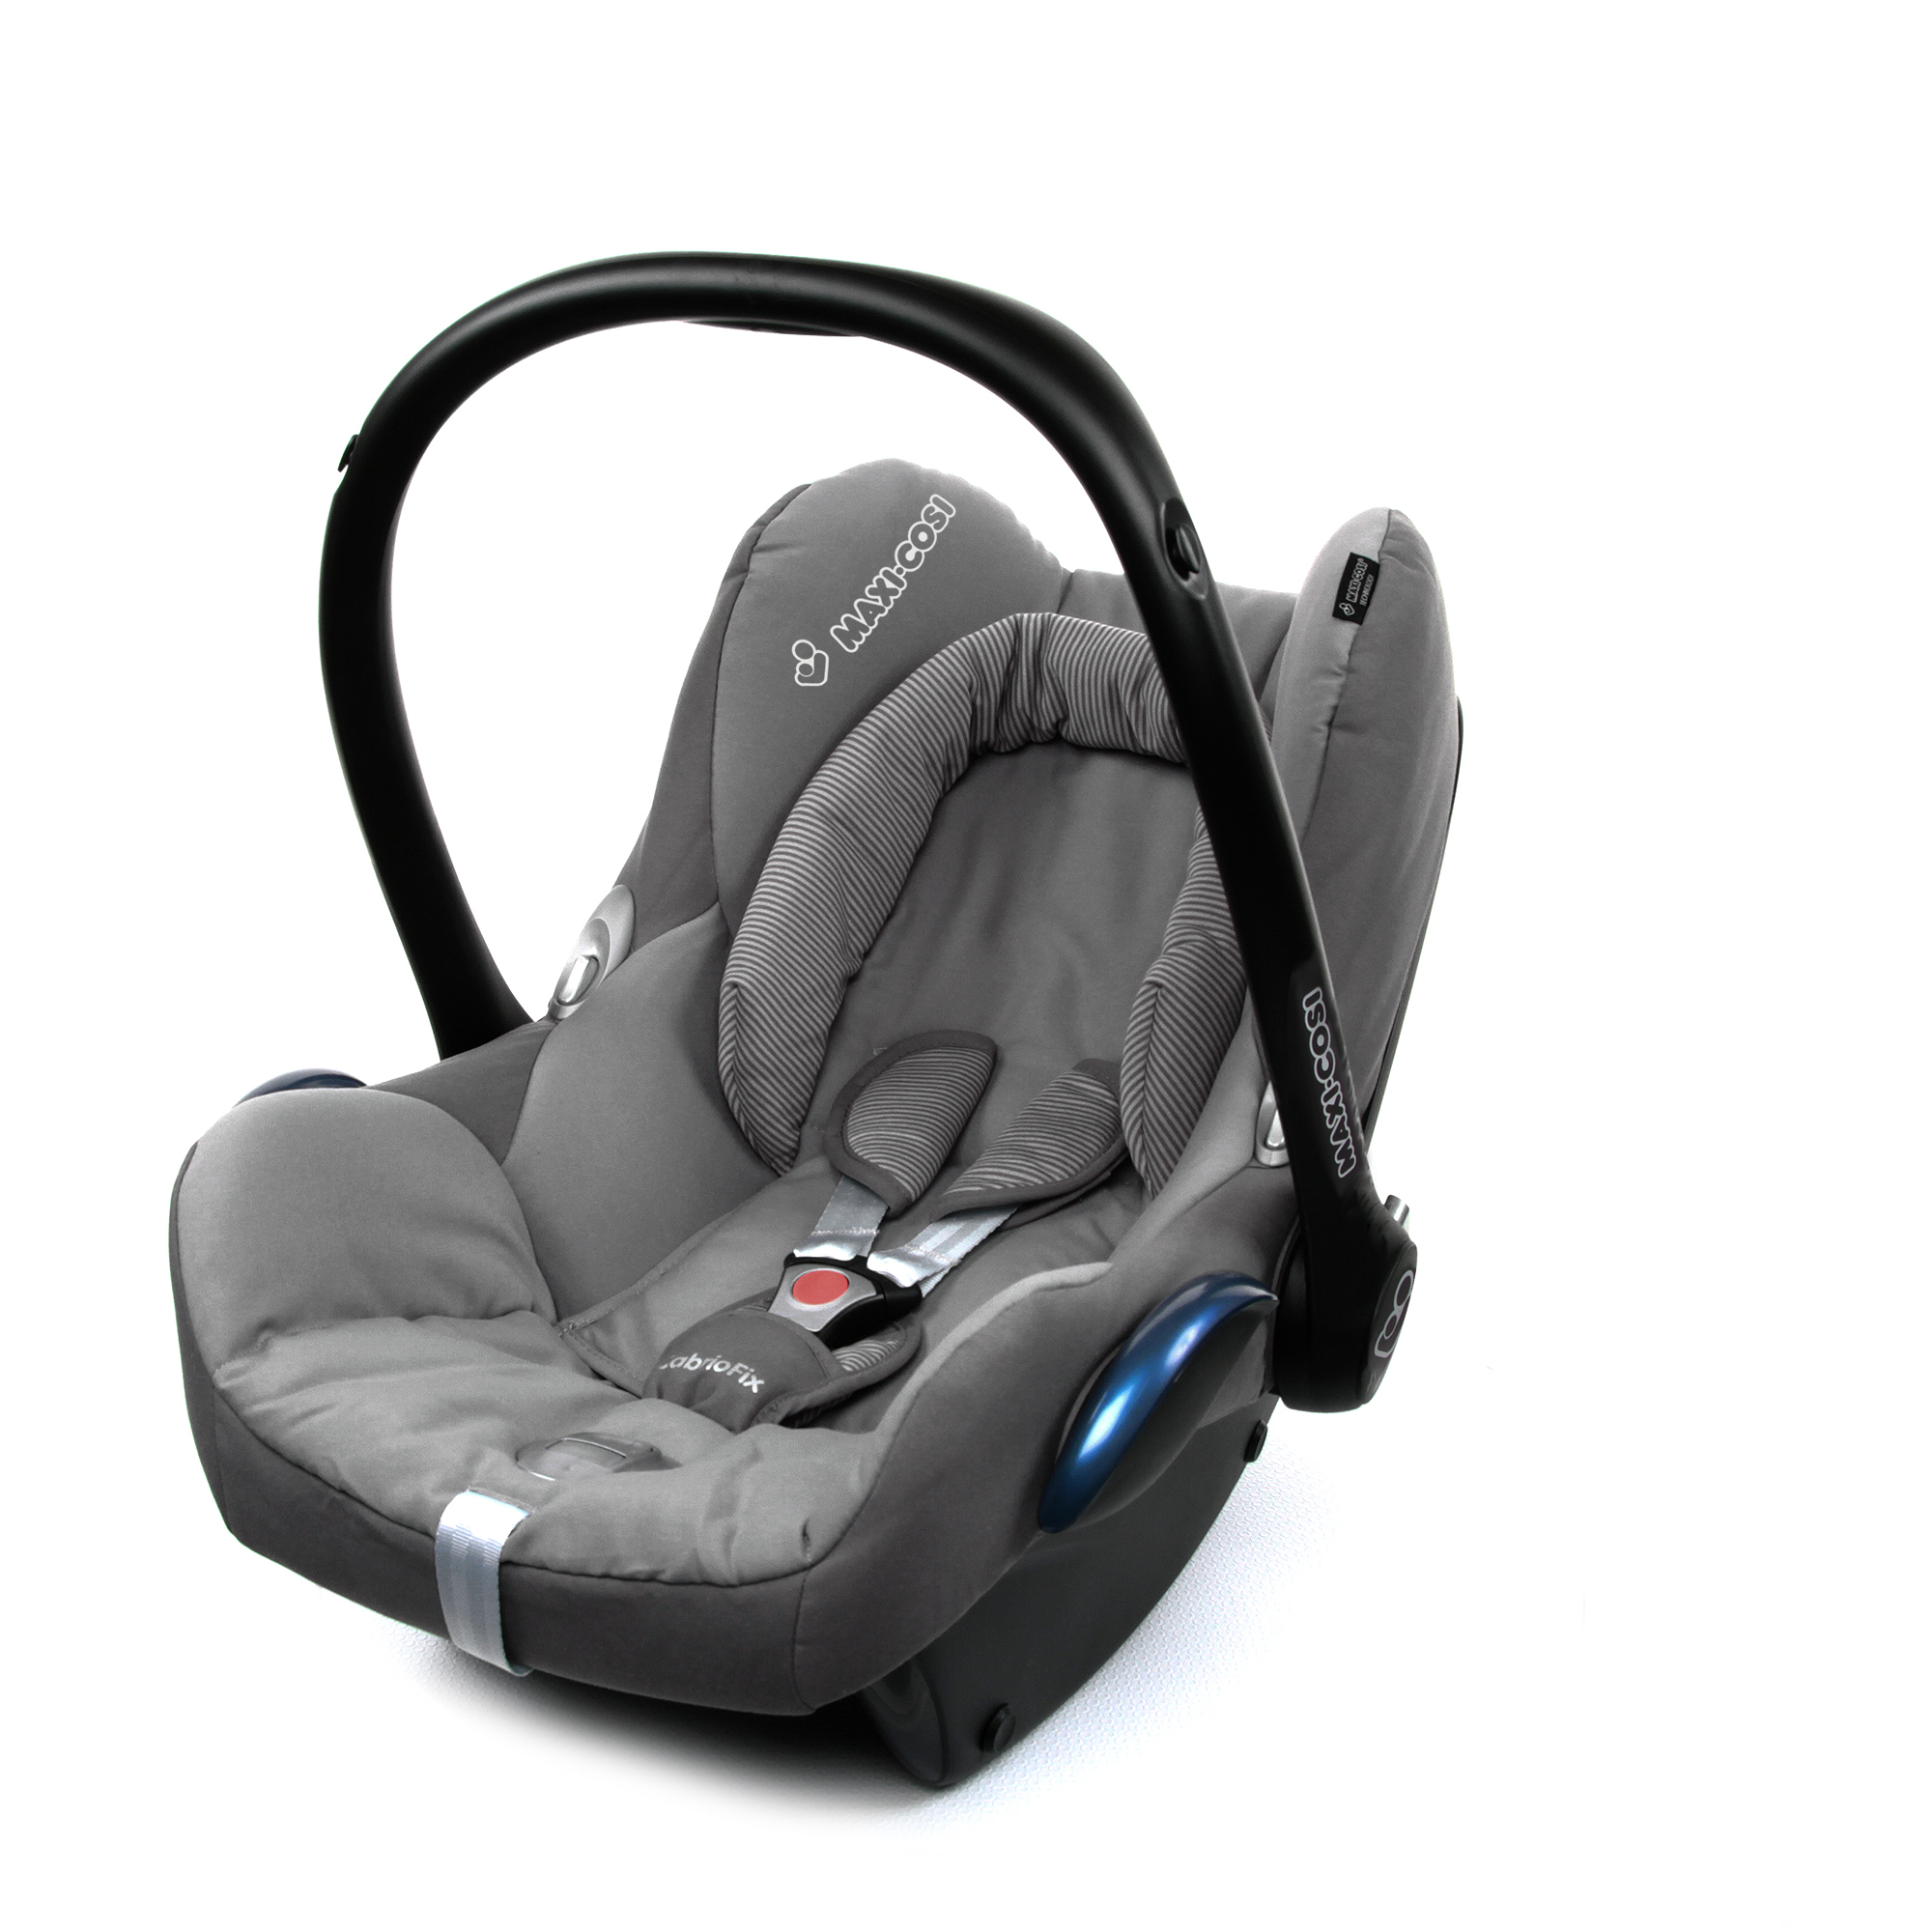 maxi cosi infant car seat cabriofix 2017 concrete grey buy at kidsroom car seats. Black Bedroom Furniture Sets. Home Design Ideas